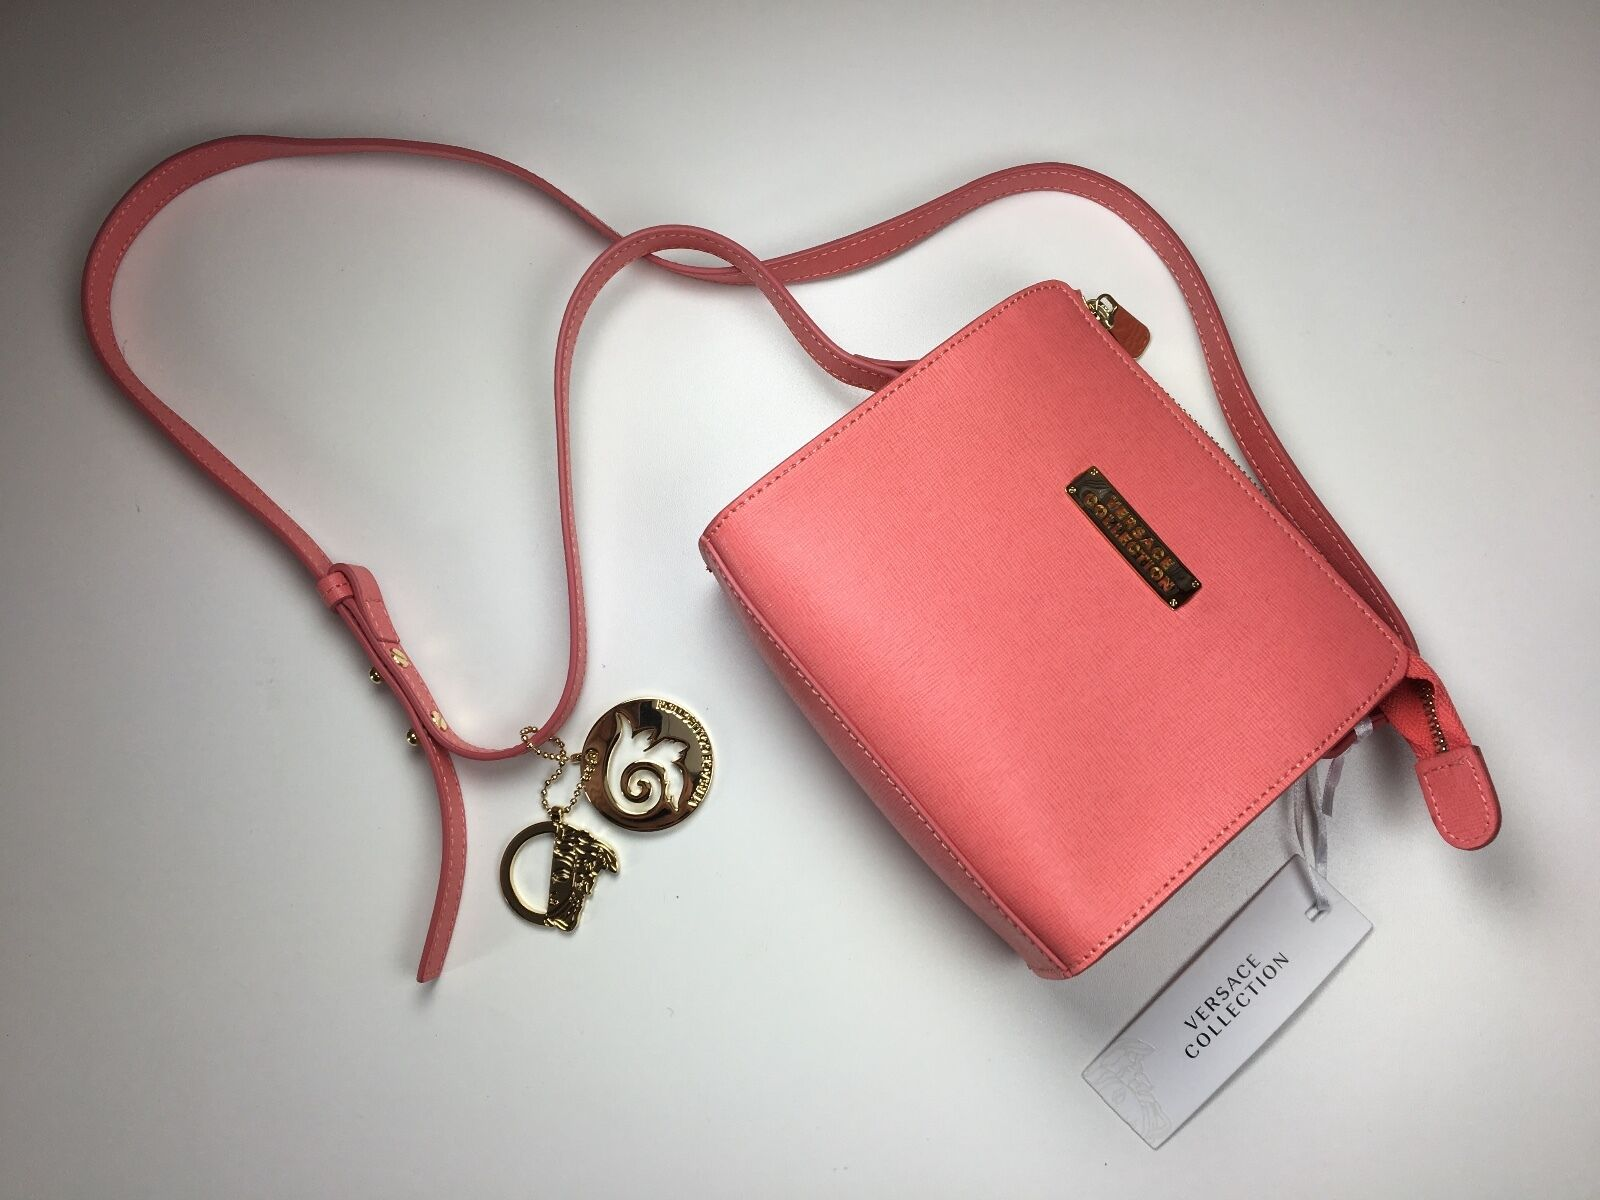 5953f7459a8e Authentic Versace Collection Saffiano Leather Small Crossbody Bag Coral фото